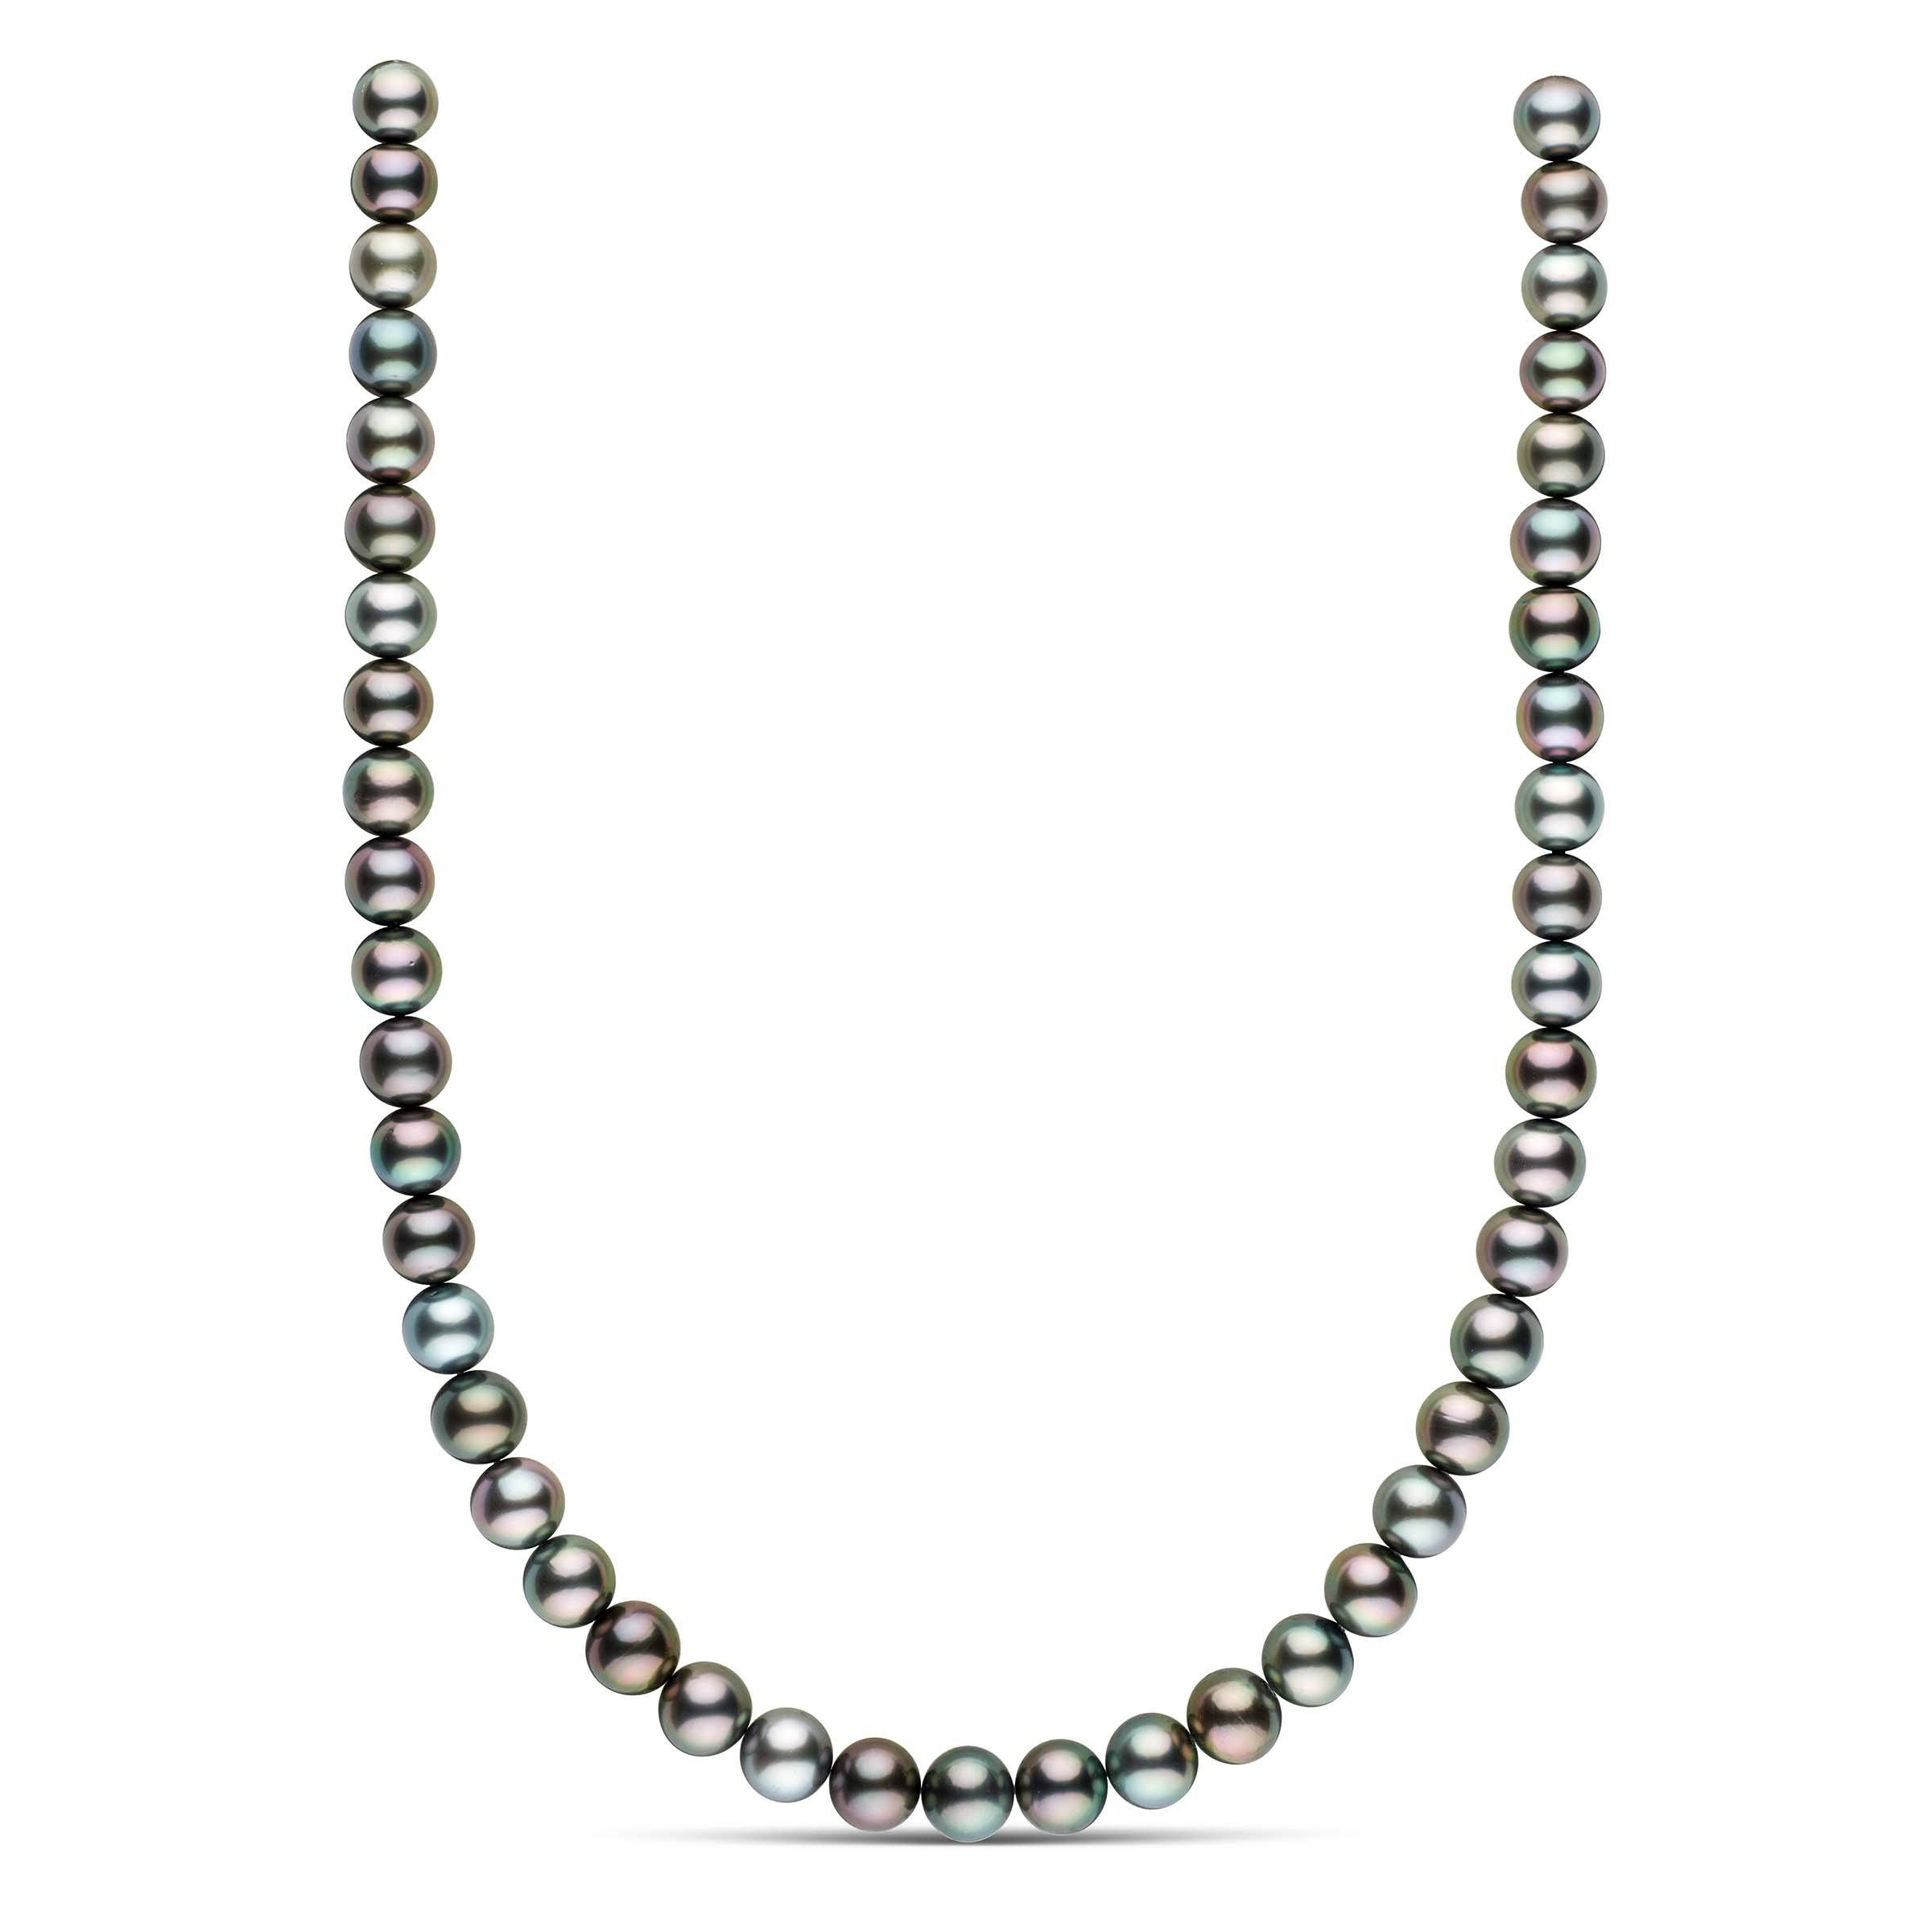 18-inch 9.0-9.8 mm AAA Round Tahitian Pearl Necklace